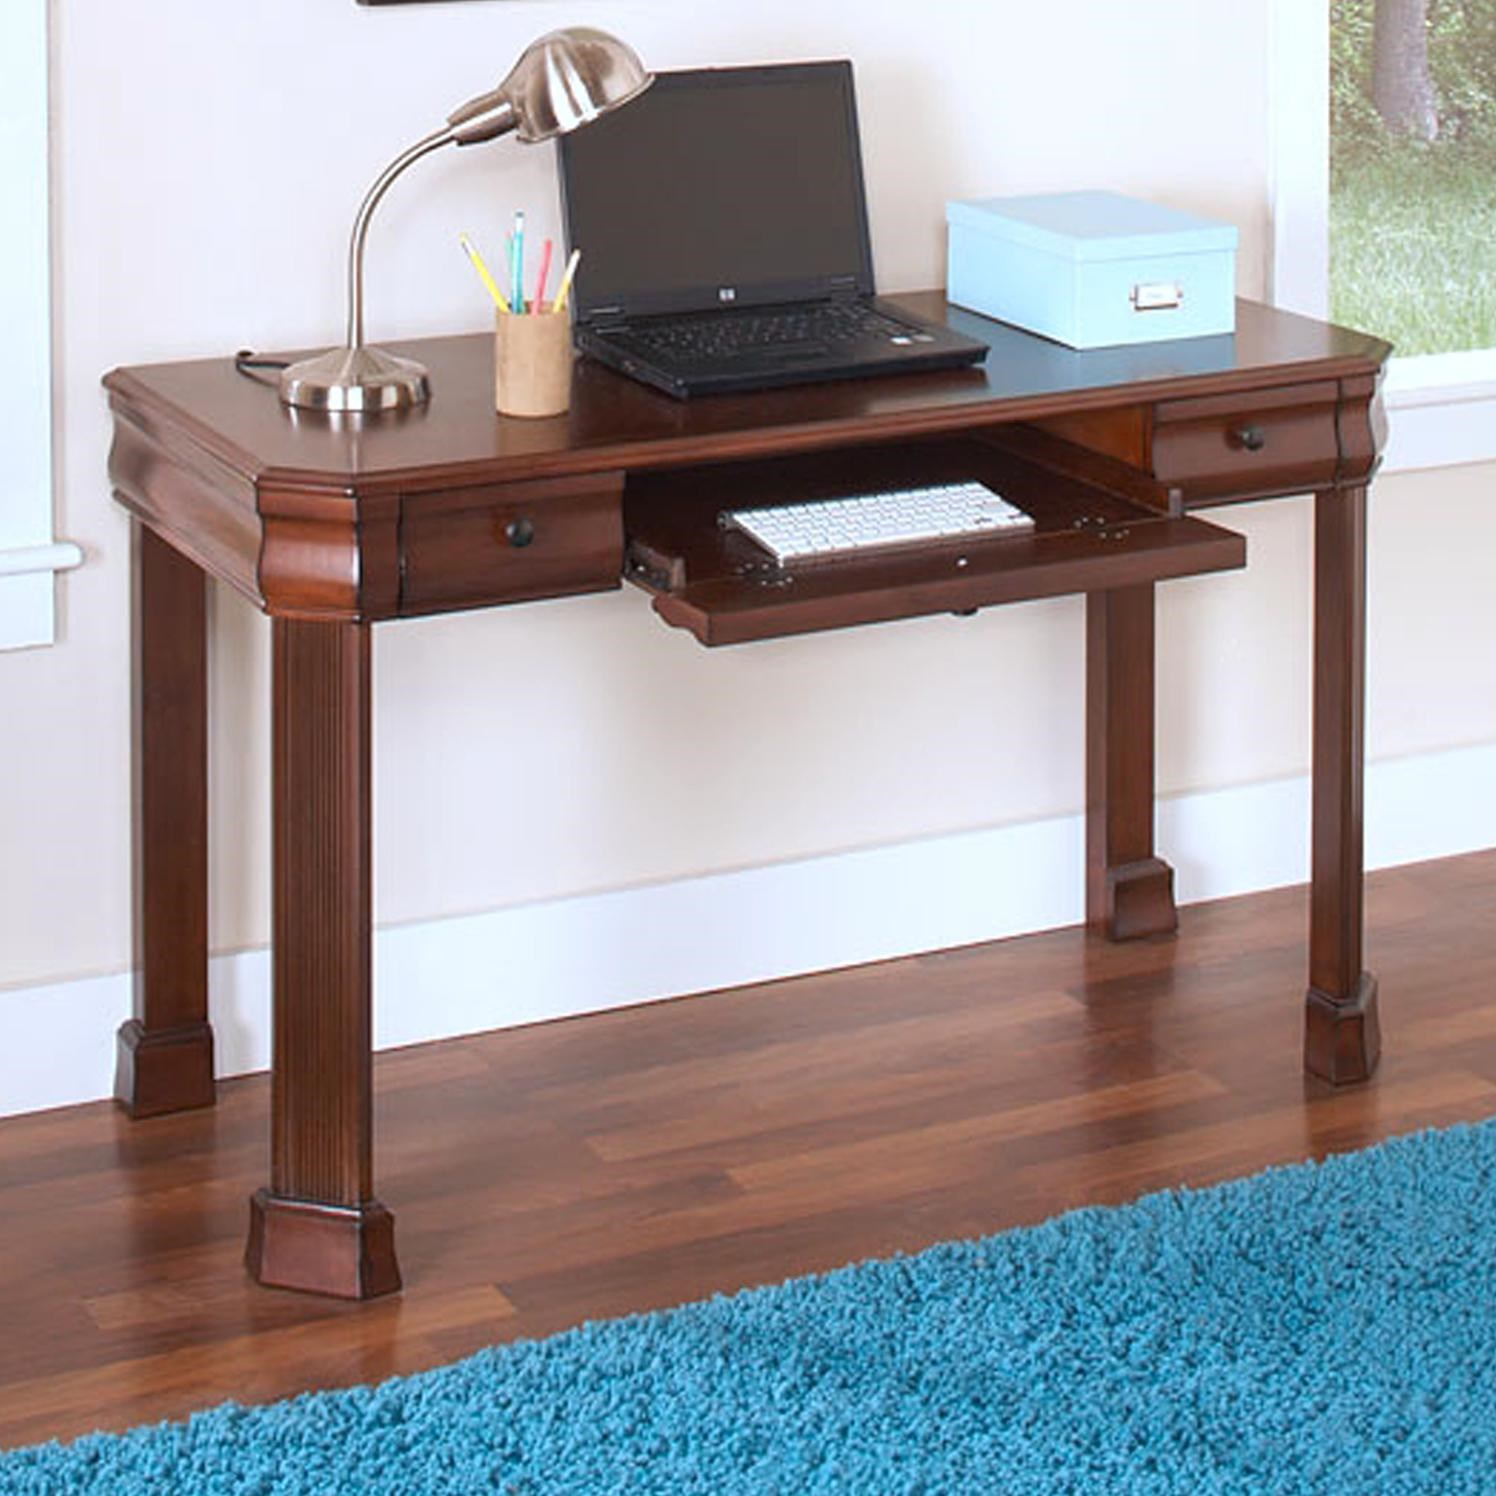 Classic Table Office Sheridan Youth Desk With Roll Out Keyboard Tray By New Classic At Dunk Bright Furniture